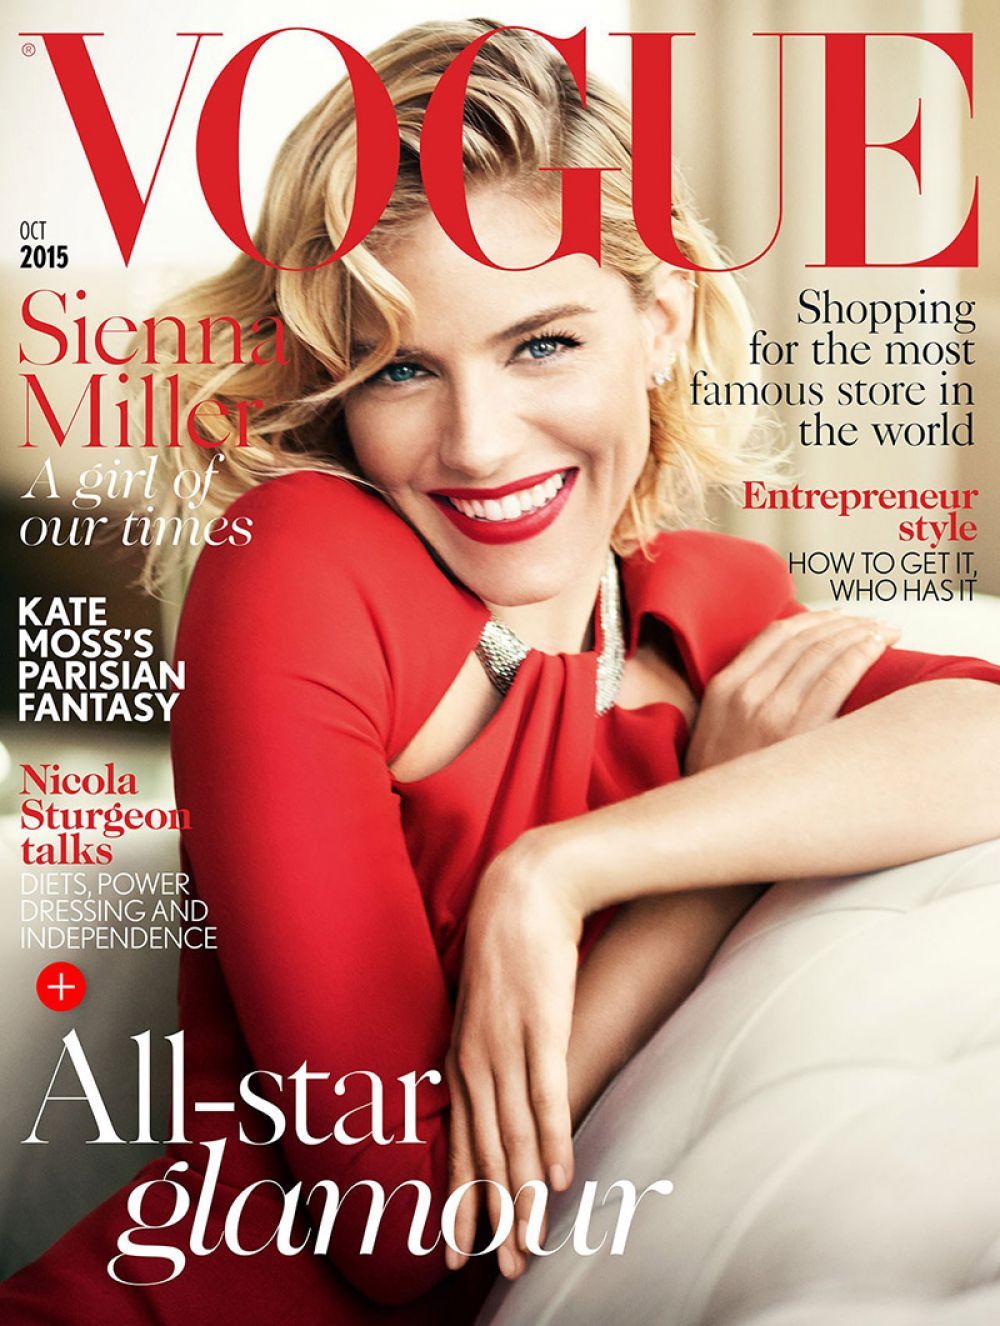 SIENNA MILLER in Vogue Magazine, October 2015 Issue